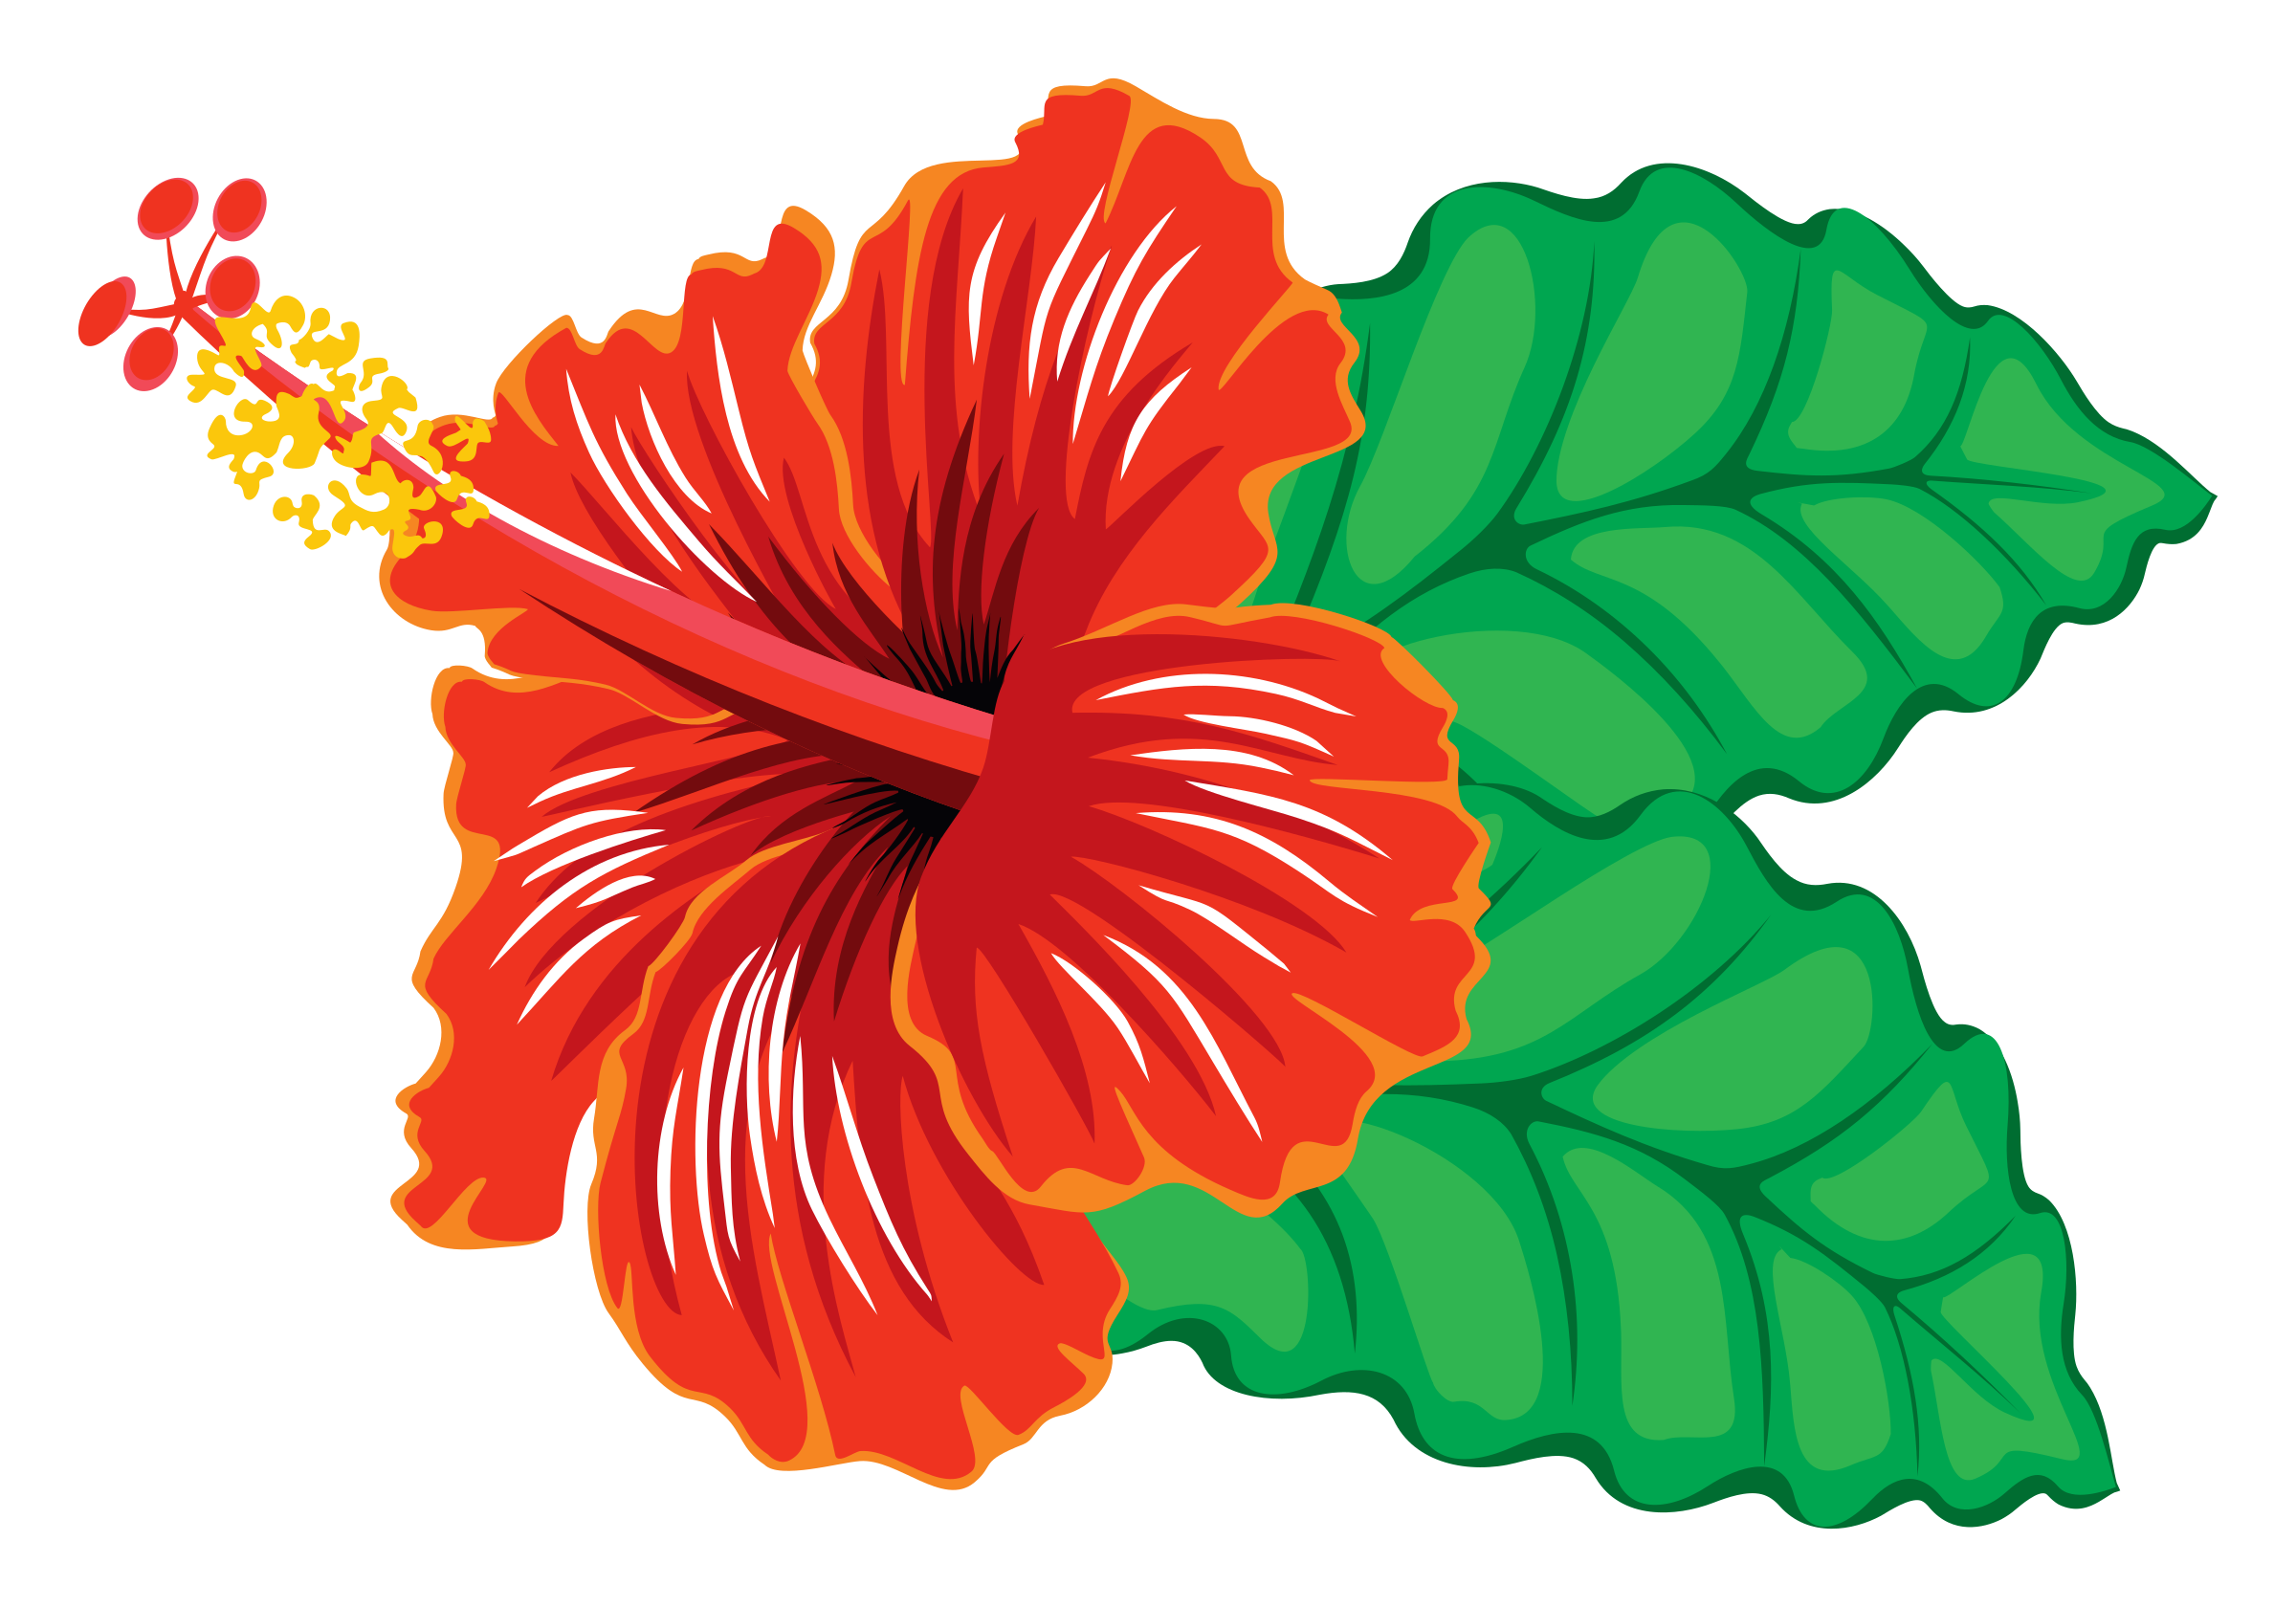 Hibiscus by floedelmann source. Drums clipart hawaiian